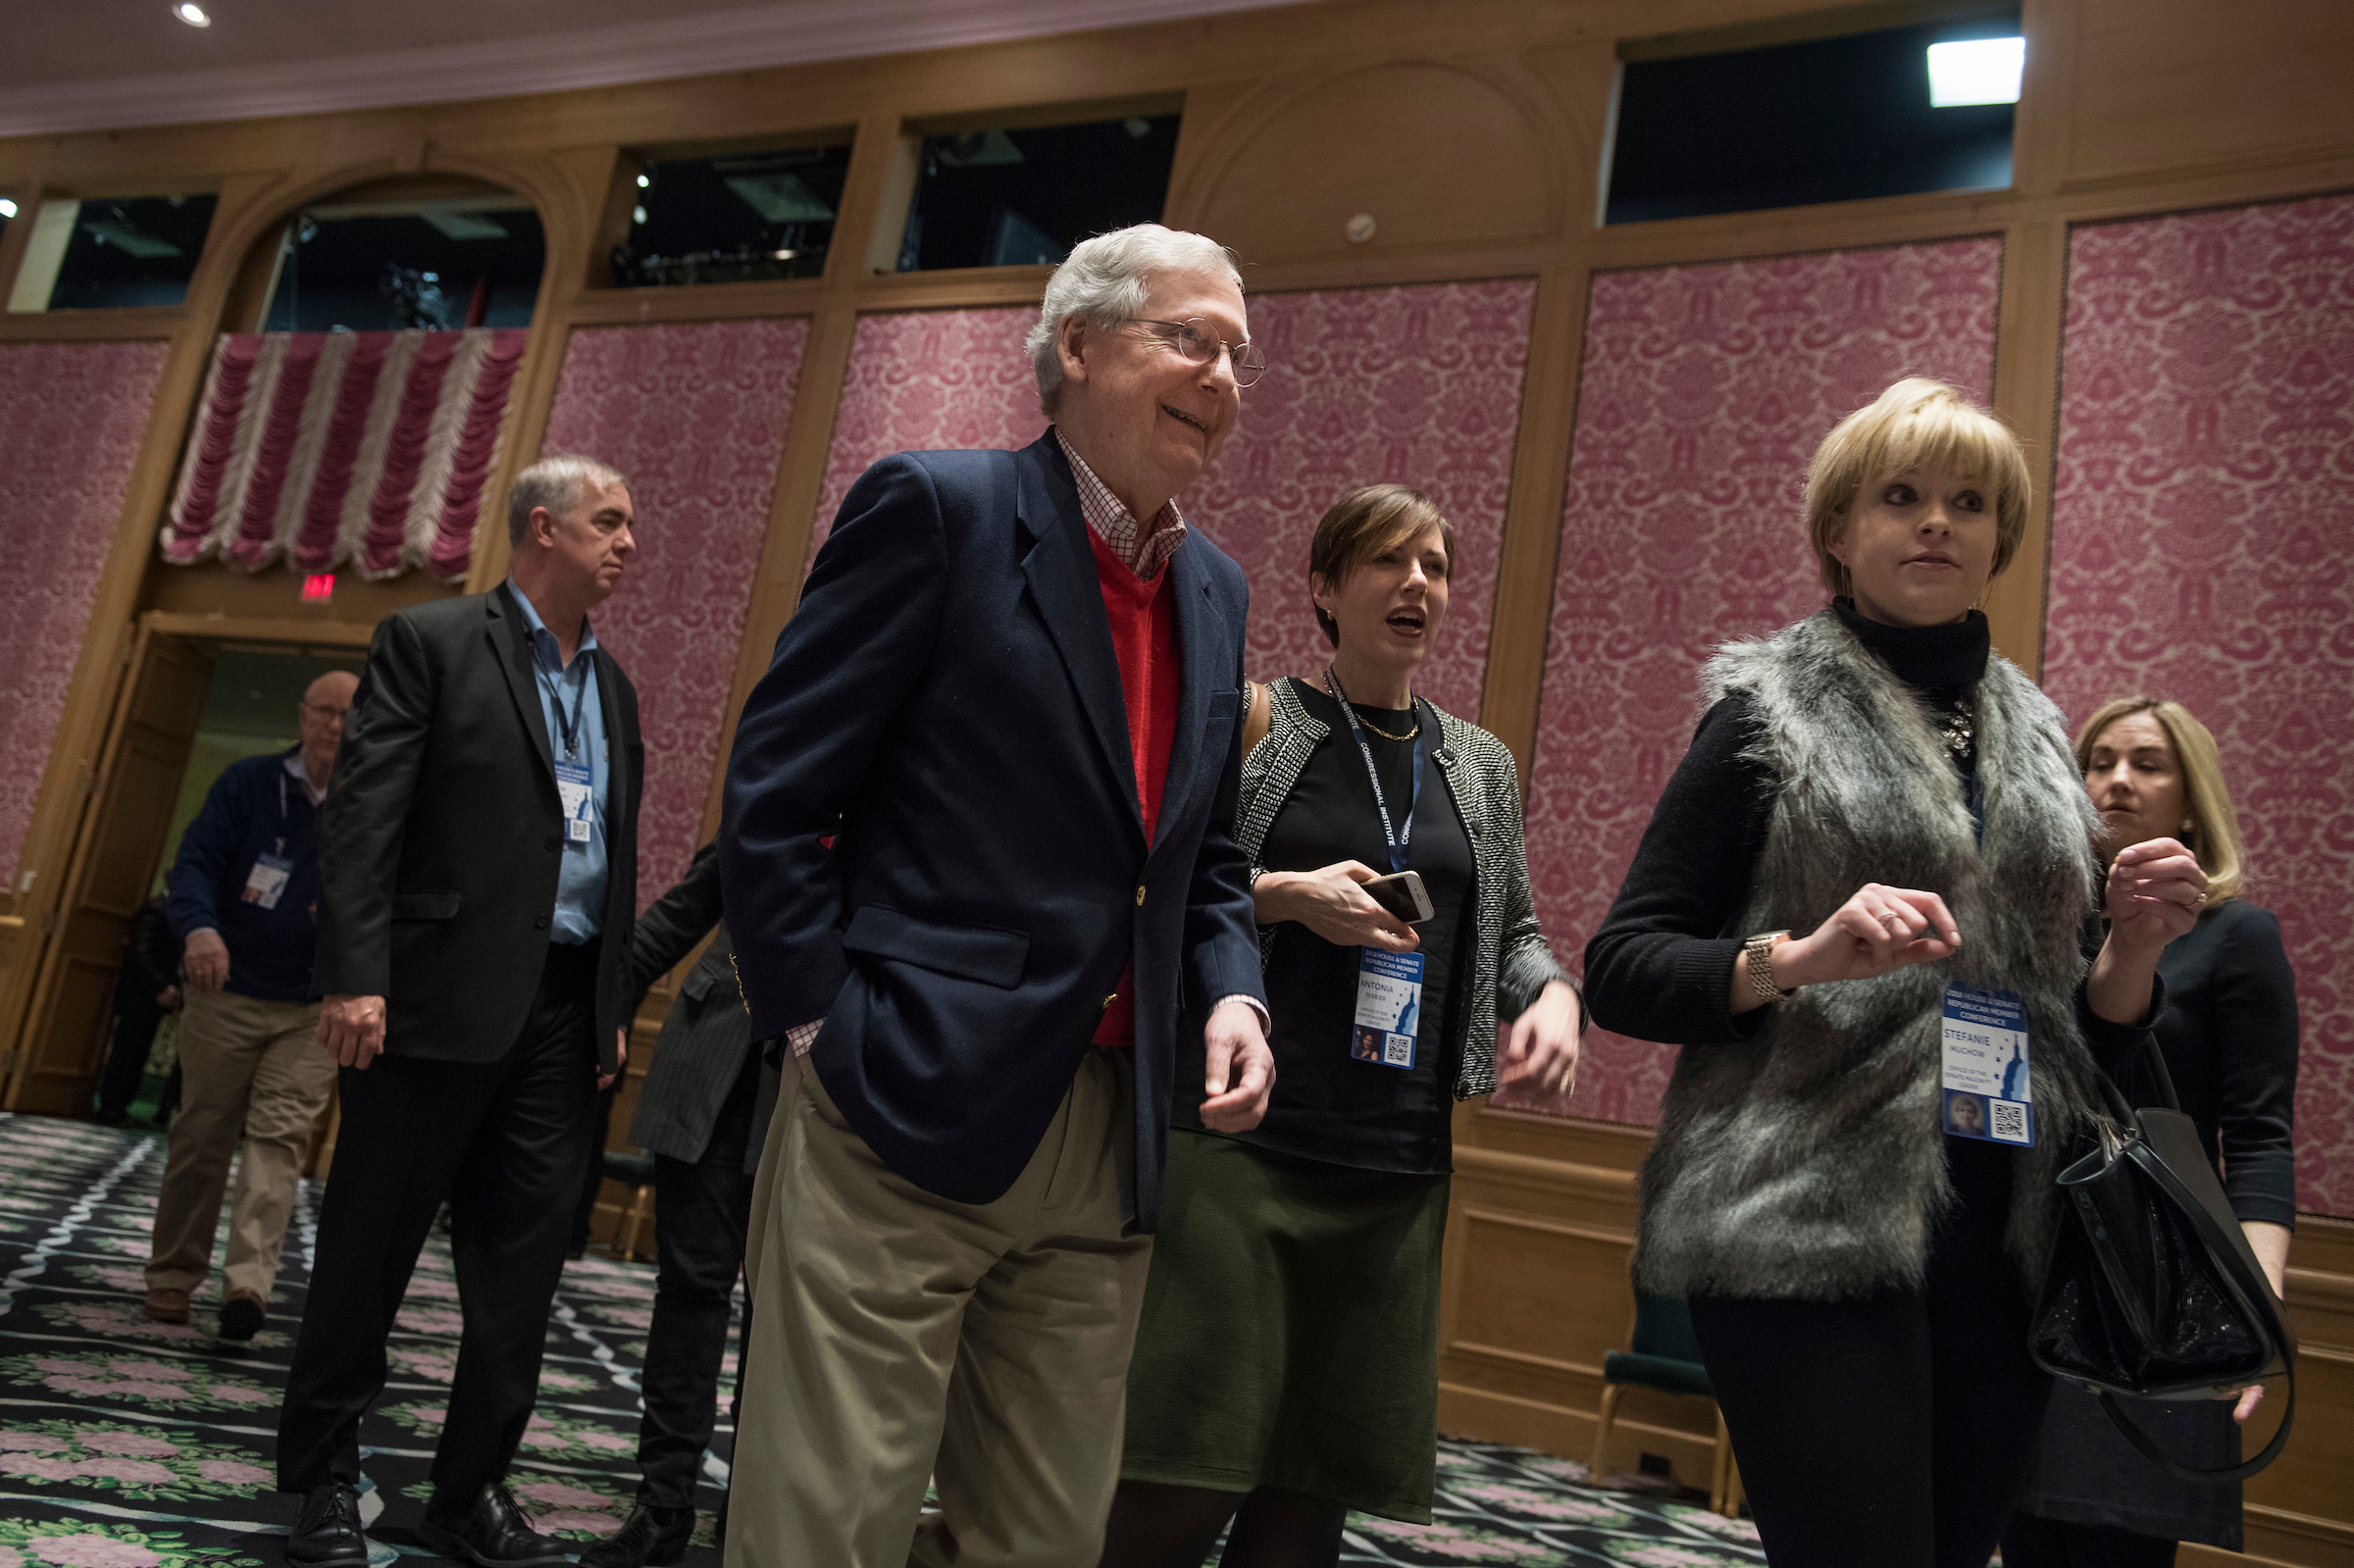 UNITED STATES - JANUARY 31: Senate Majority Leader Mitch McConnell, R-Ky., arrives to a dinner at the House and Senate Republican retreat at The Greenbrier resort in White Sulphur Springs, W.Va., on January 31, 2018. (Photo By Tom Williams/CQ Roll Call)